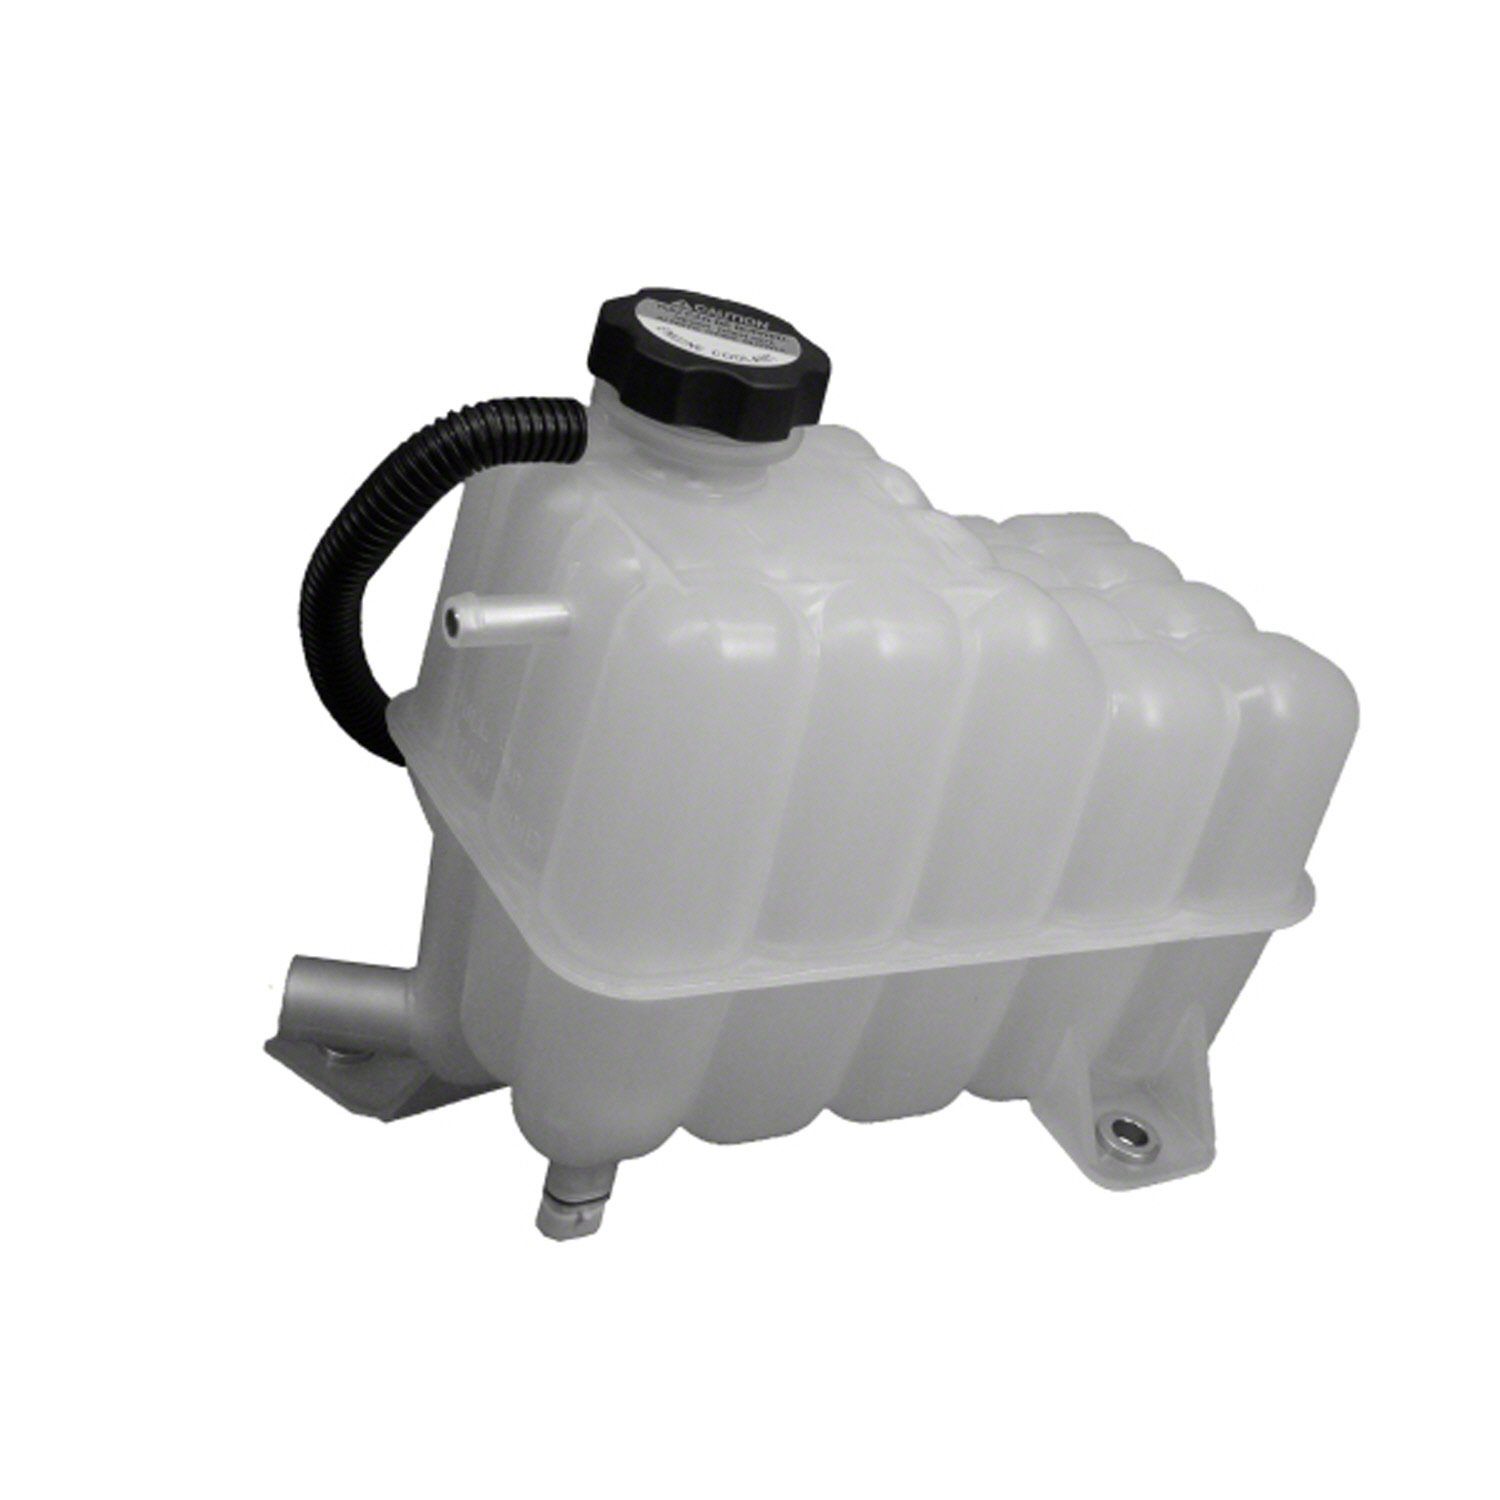 OE Replacement 2000-2006 CHEVROLET AVALANCHE Engine Coolant Reservoir Partslink Number GM3014121